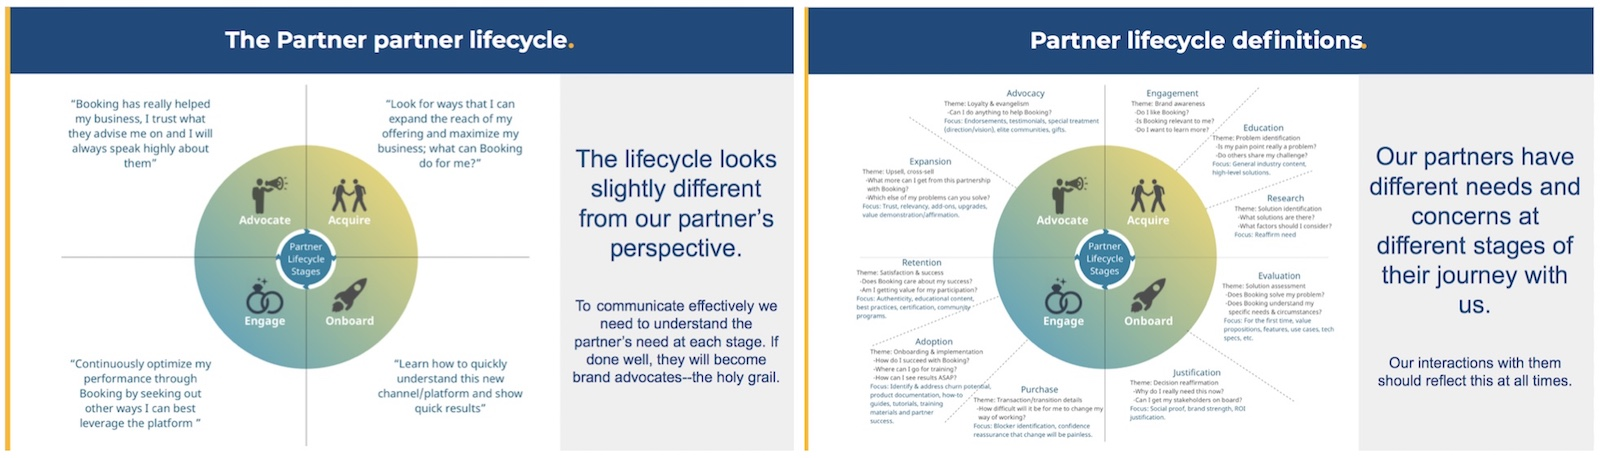 Partner-centric view of lifecycle